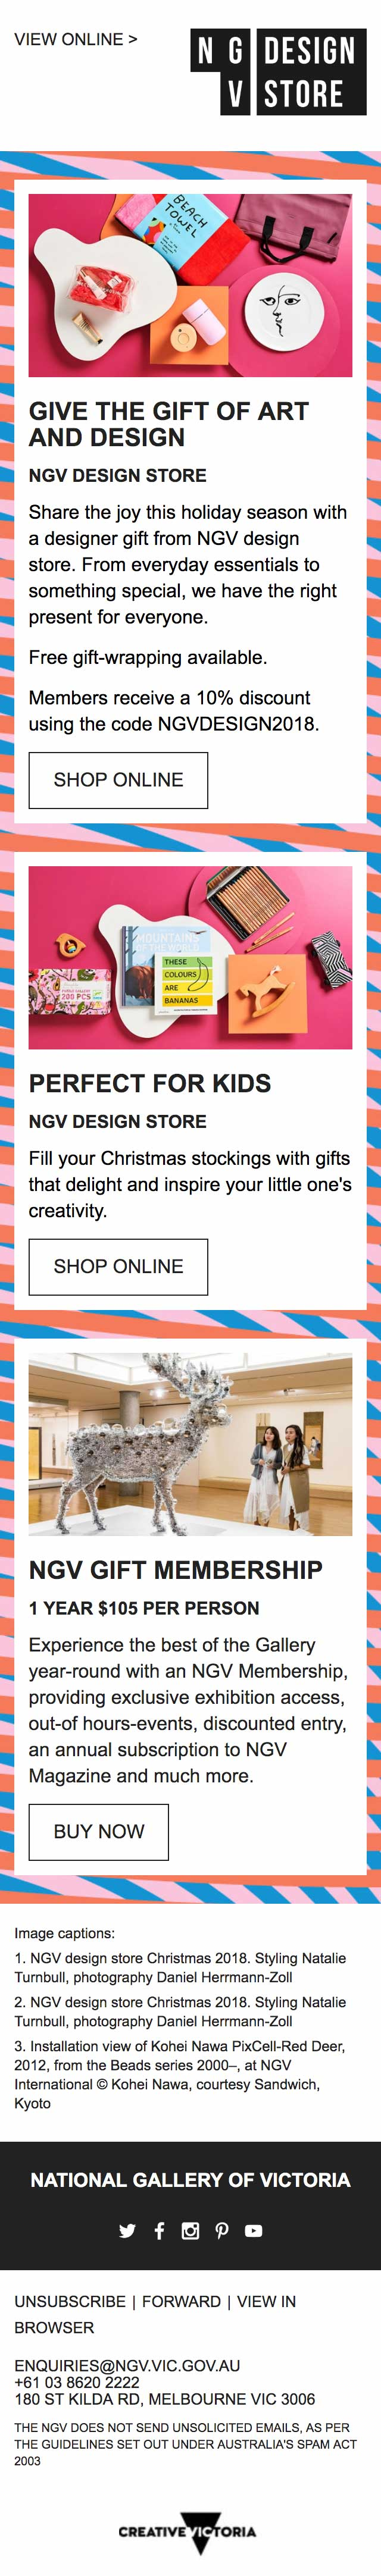 Give the Gift of Art and Design - mobile view